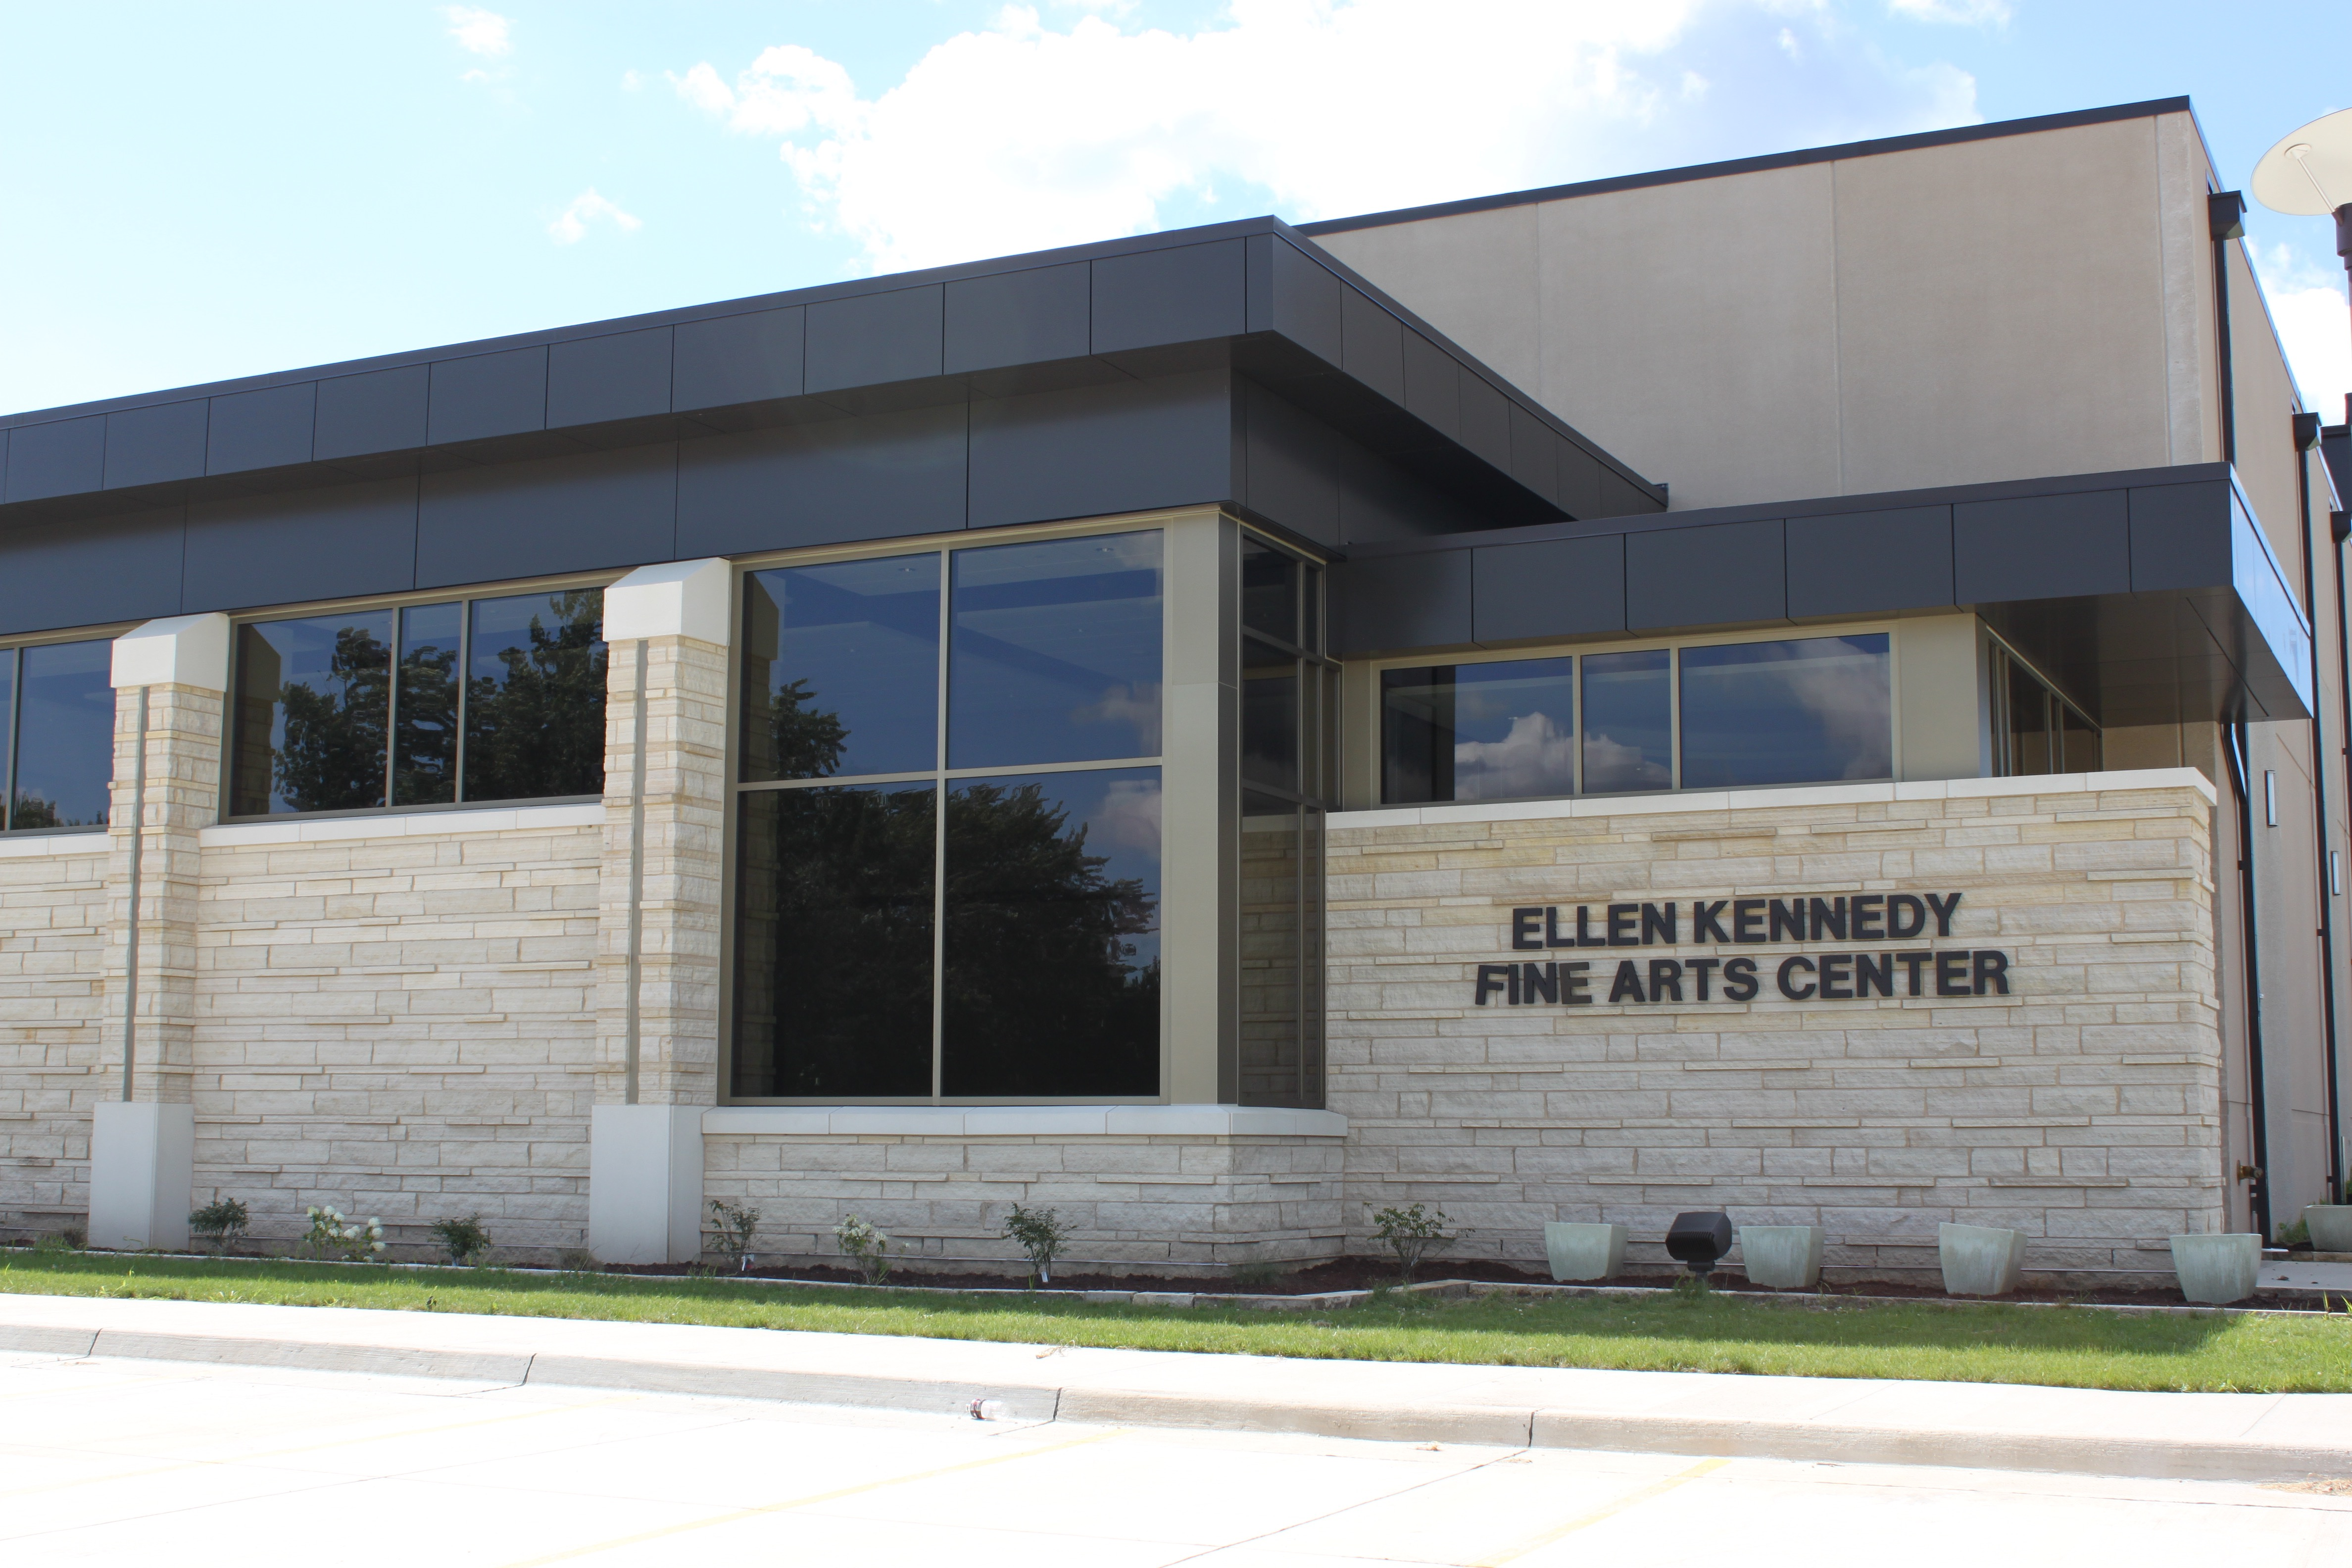 Ellen Kennedy Fine Arts Center